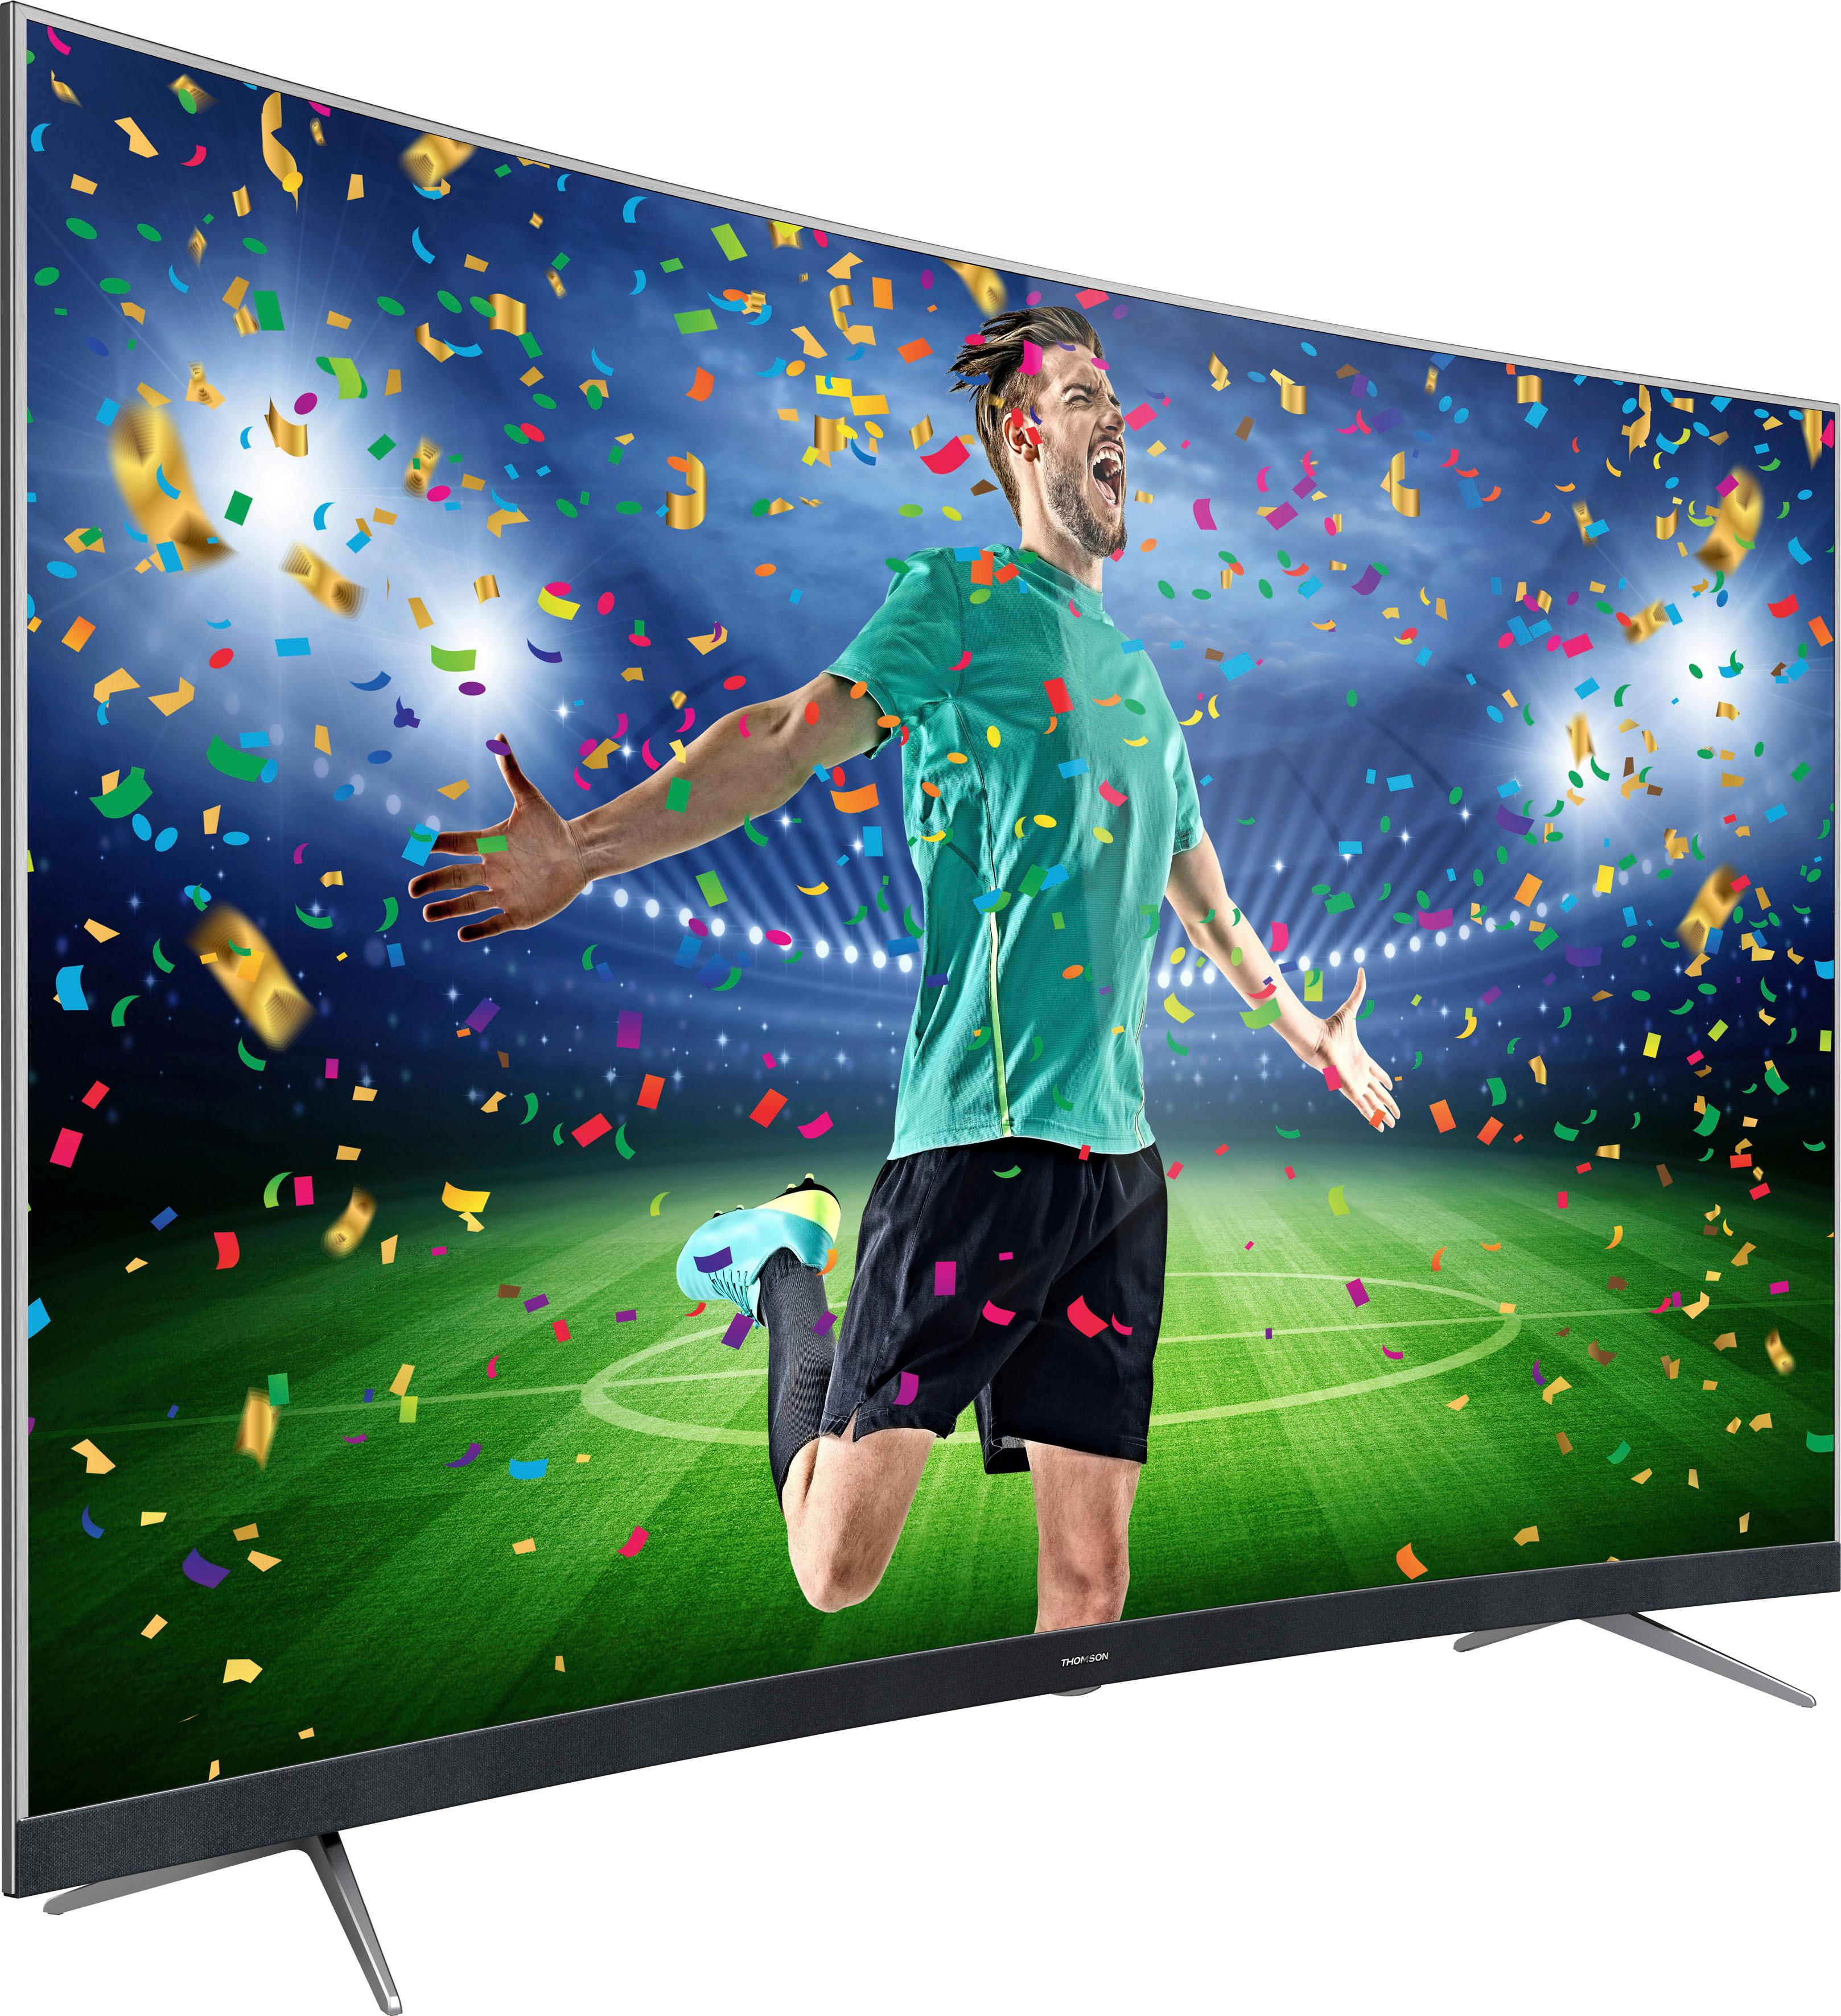 Thomson 55ud6696 Curved Led Fernseher 139 Cm 55 Zoll 4k Ultra Hd Smart Tv